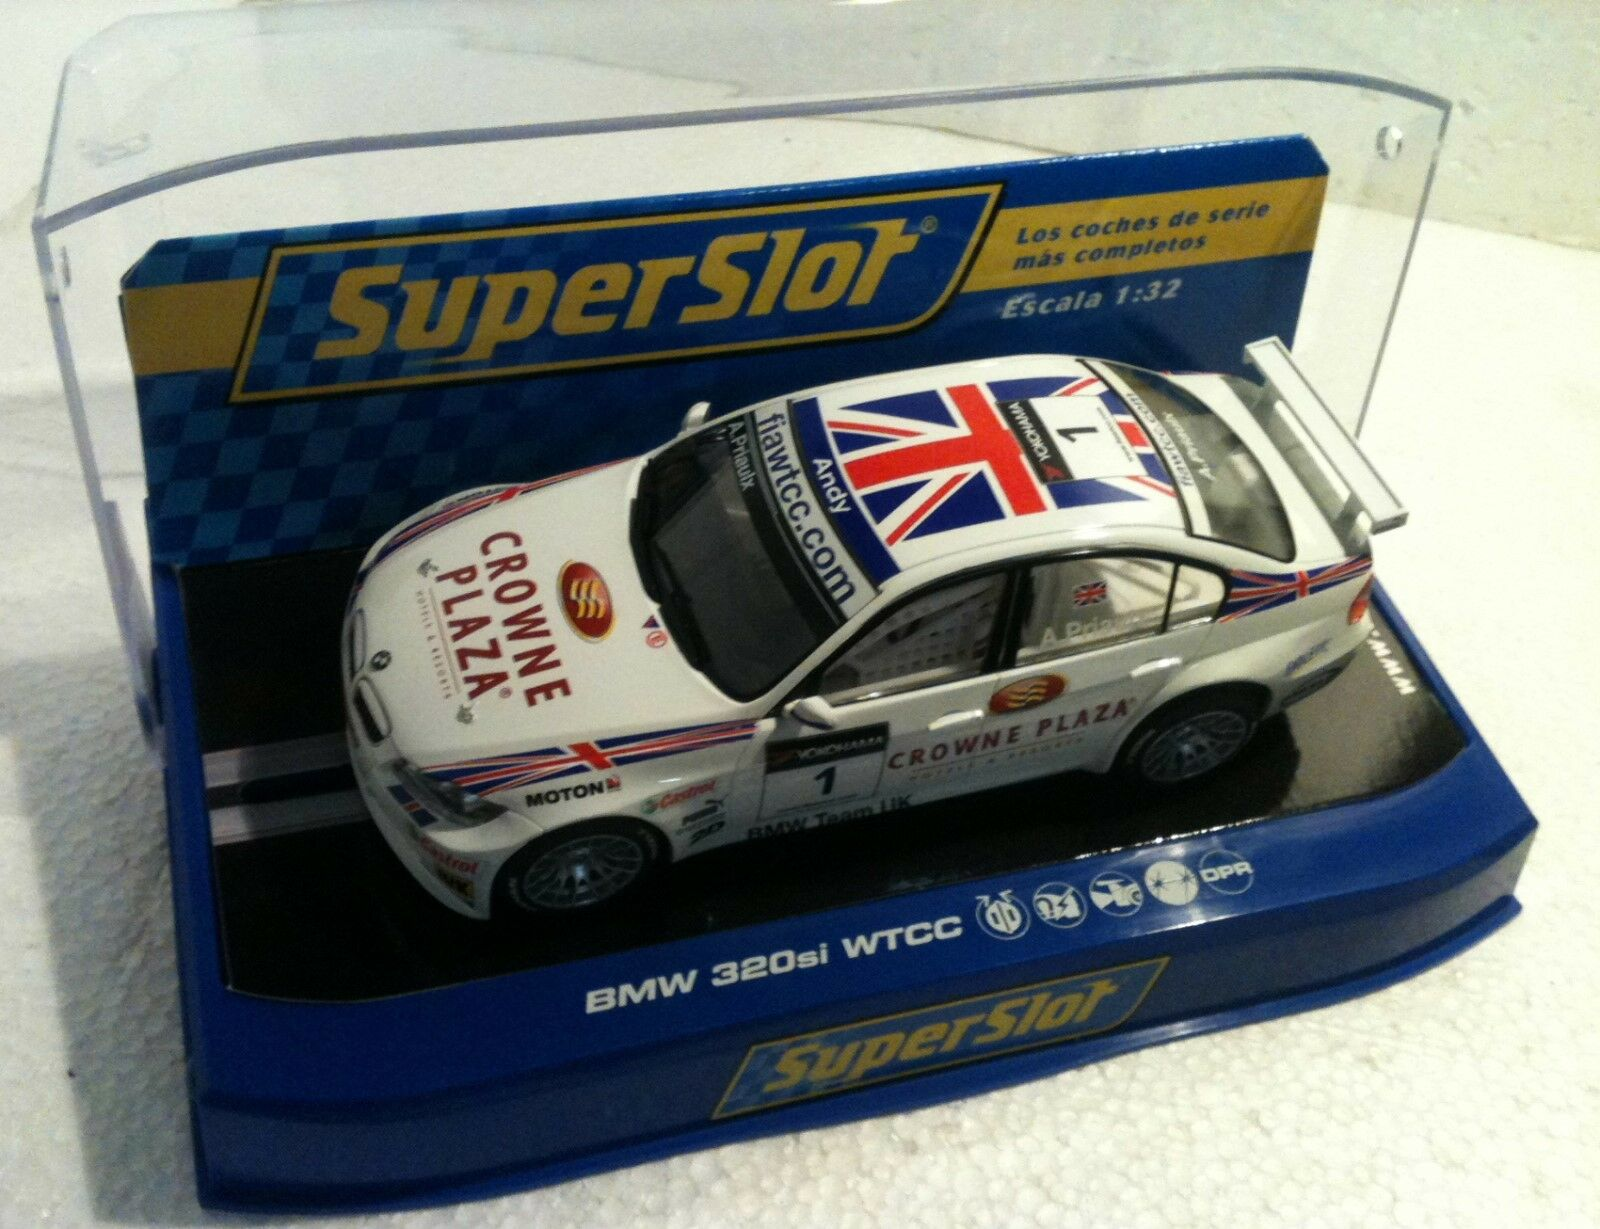 Qq H 2714 SUPERSLOT BMW 320si WTCC TO PRIAUX CROWNE PLAZA - scalextric UK